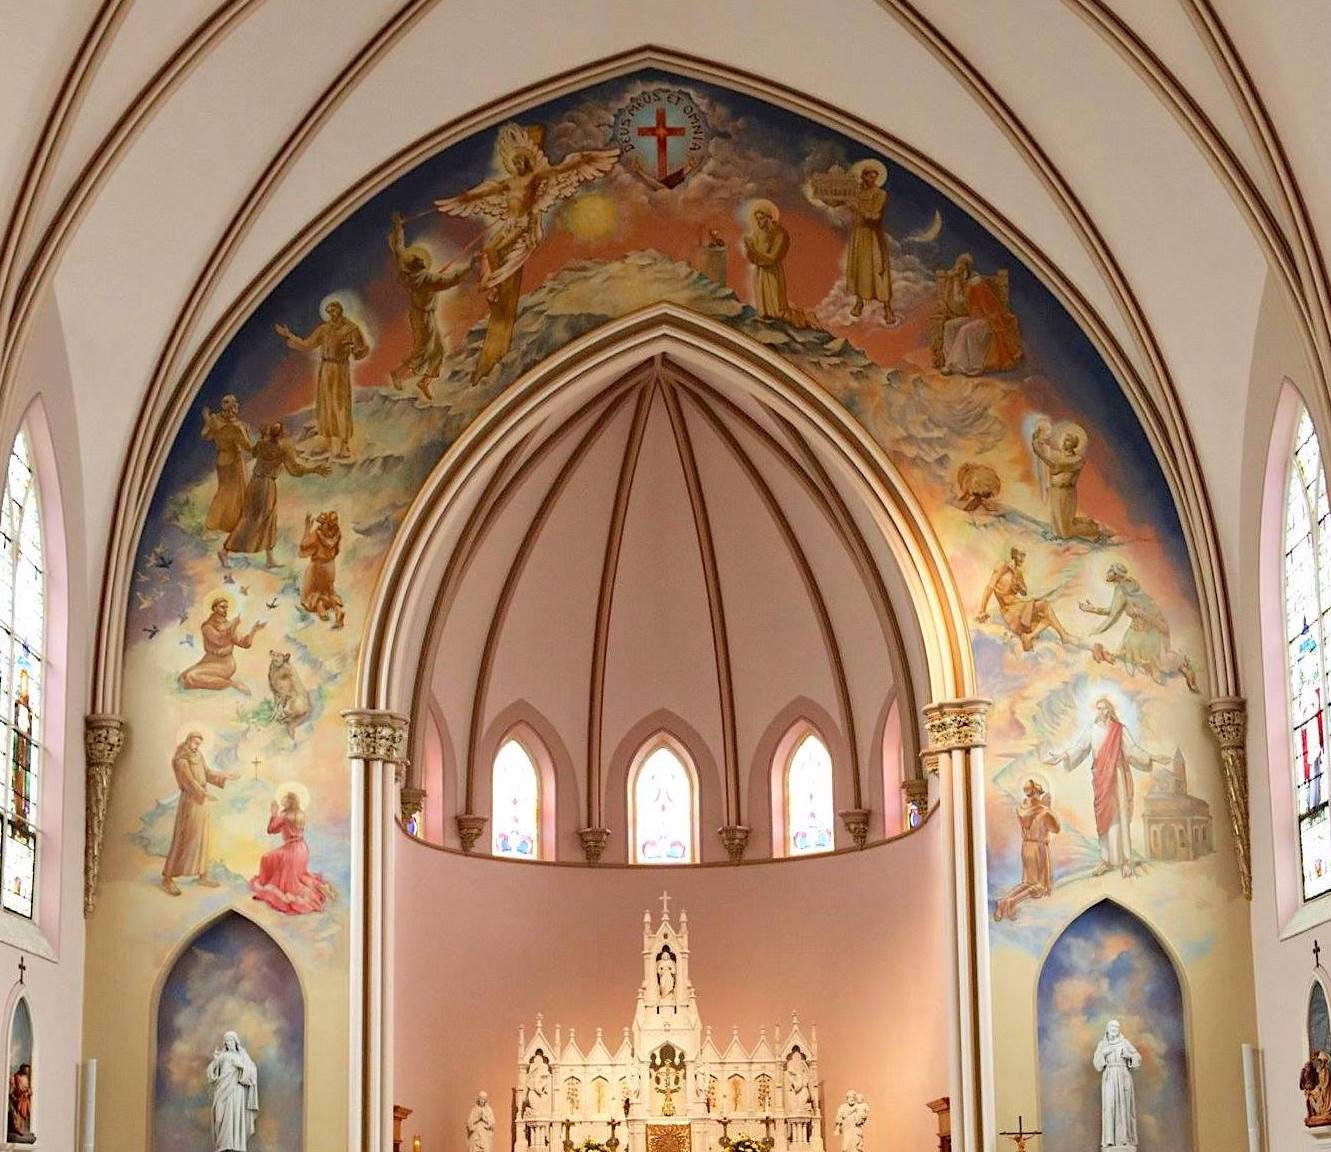 Life of St. Francis of Assisi sanctuary apse mural